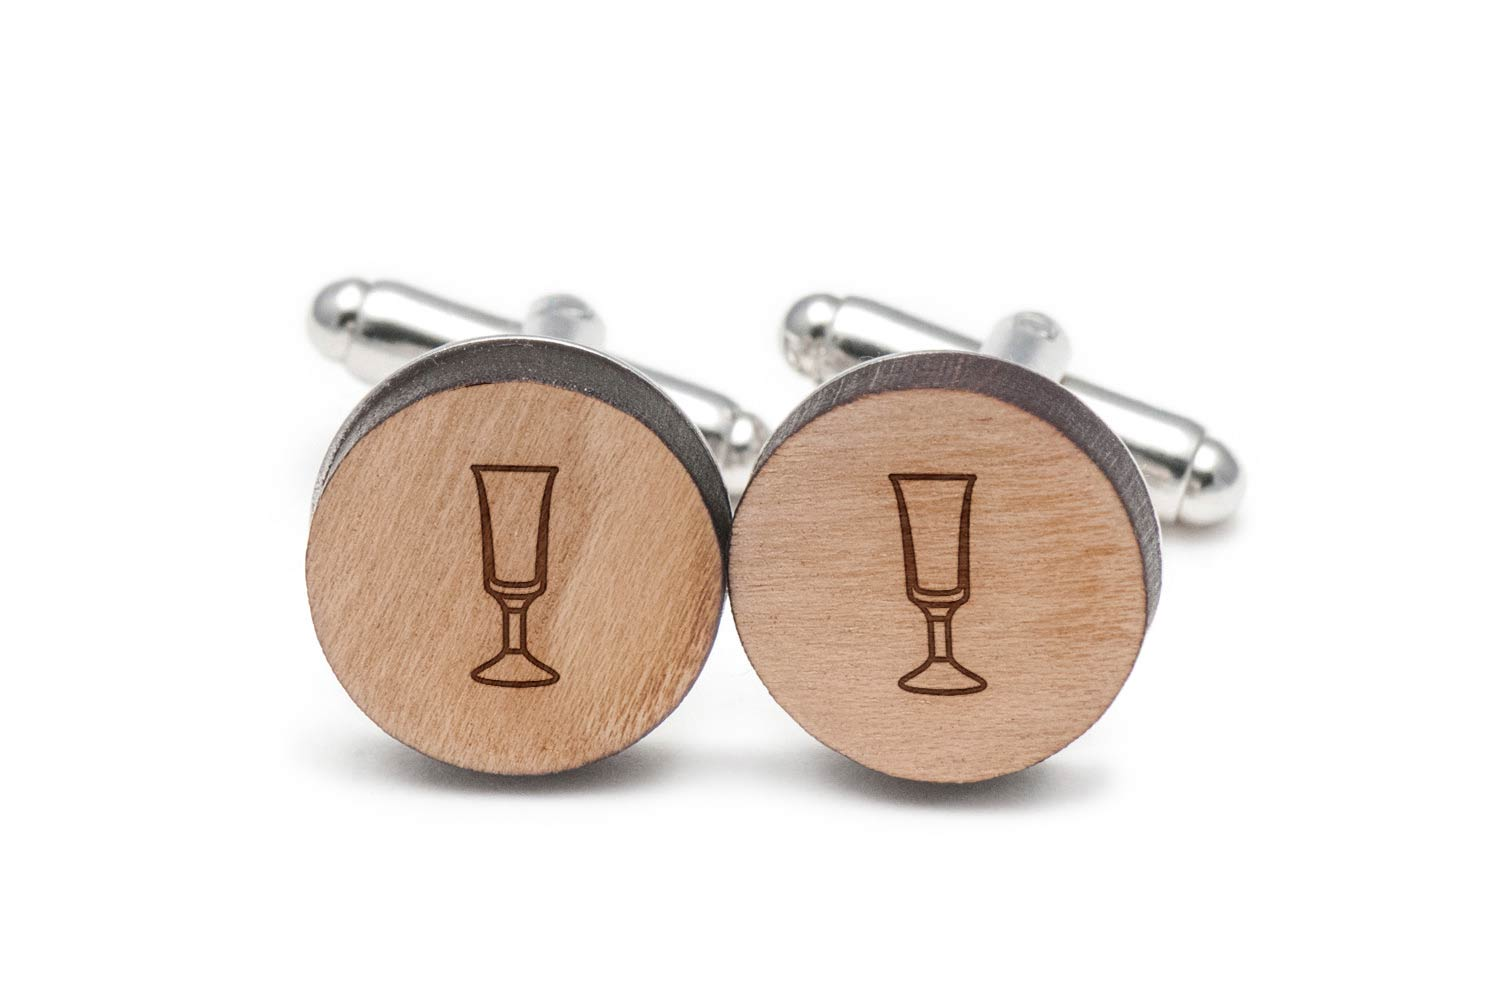 Cordial Glass Cufflinks, Wood Cufflinks Hand Made in the USA by BigSpool Distributors